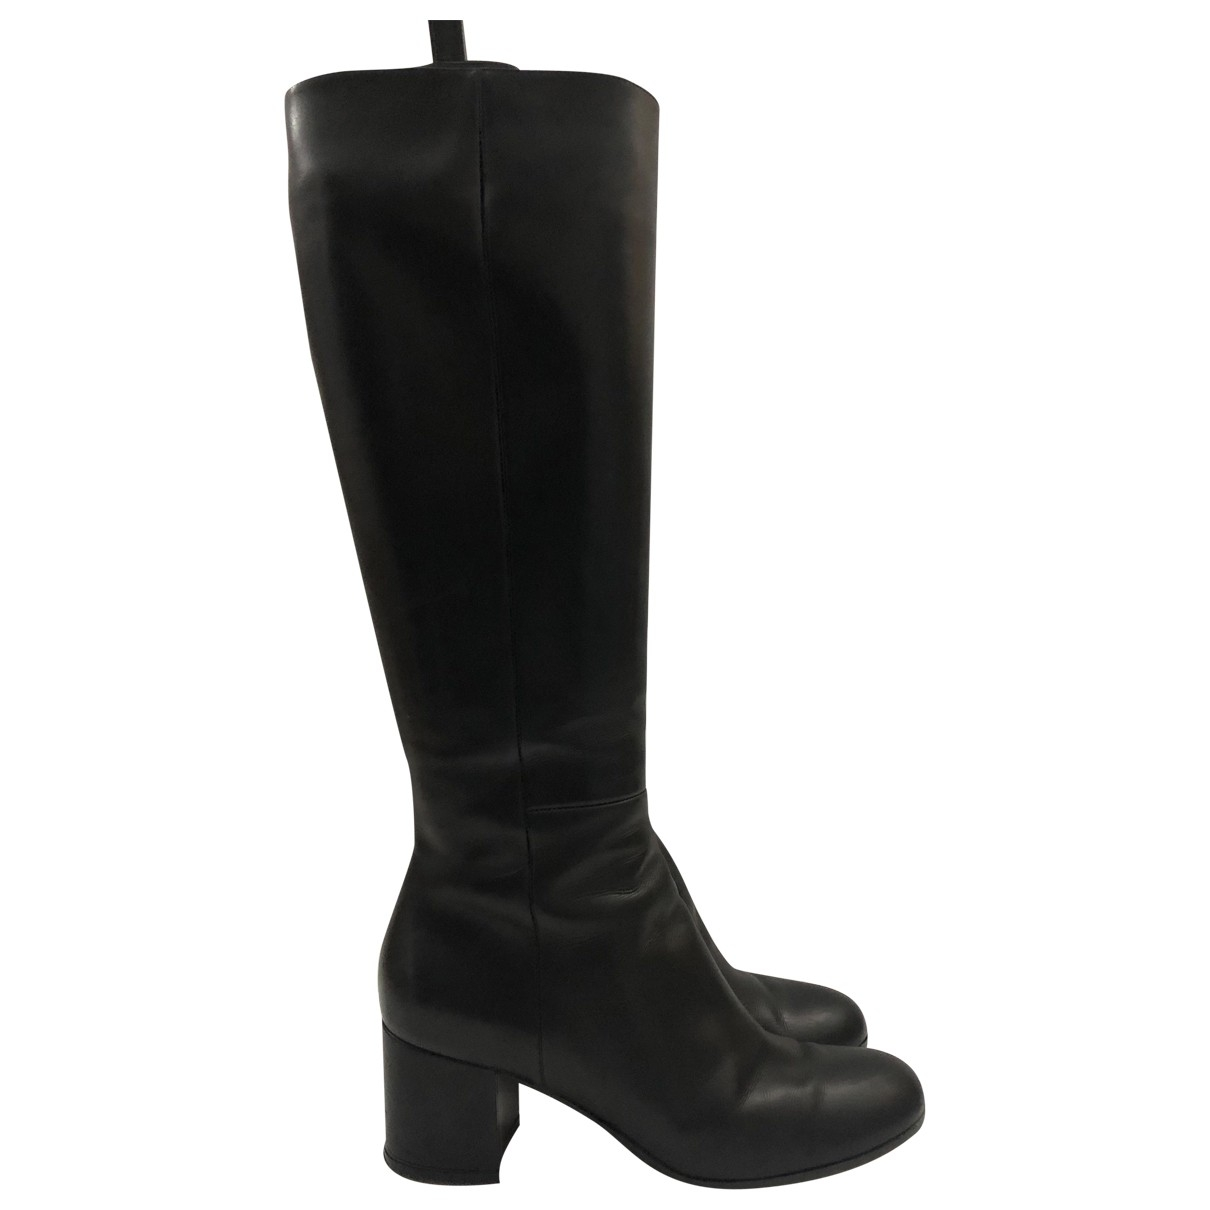 Gianvito Rossi \N Black Leather Boots for Women 36.5 EU